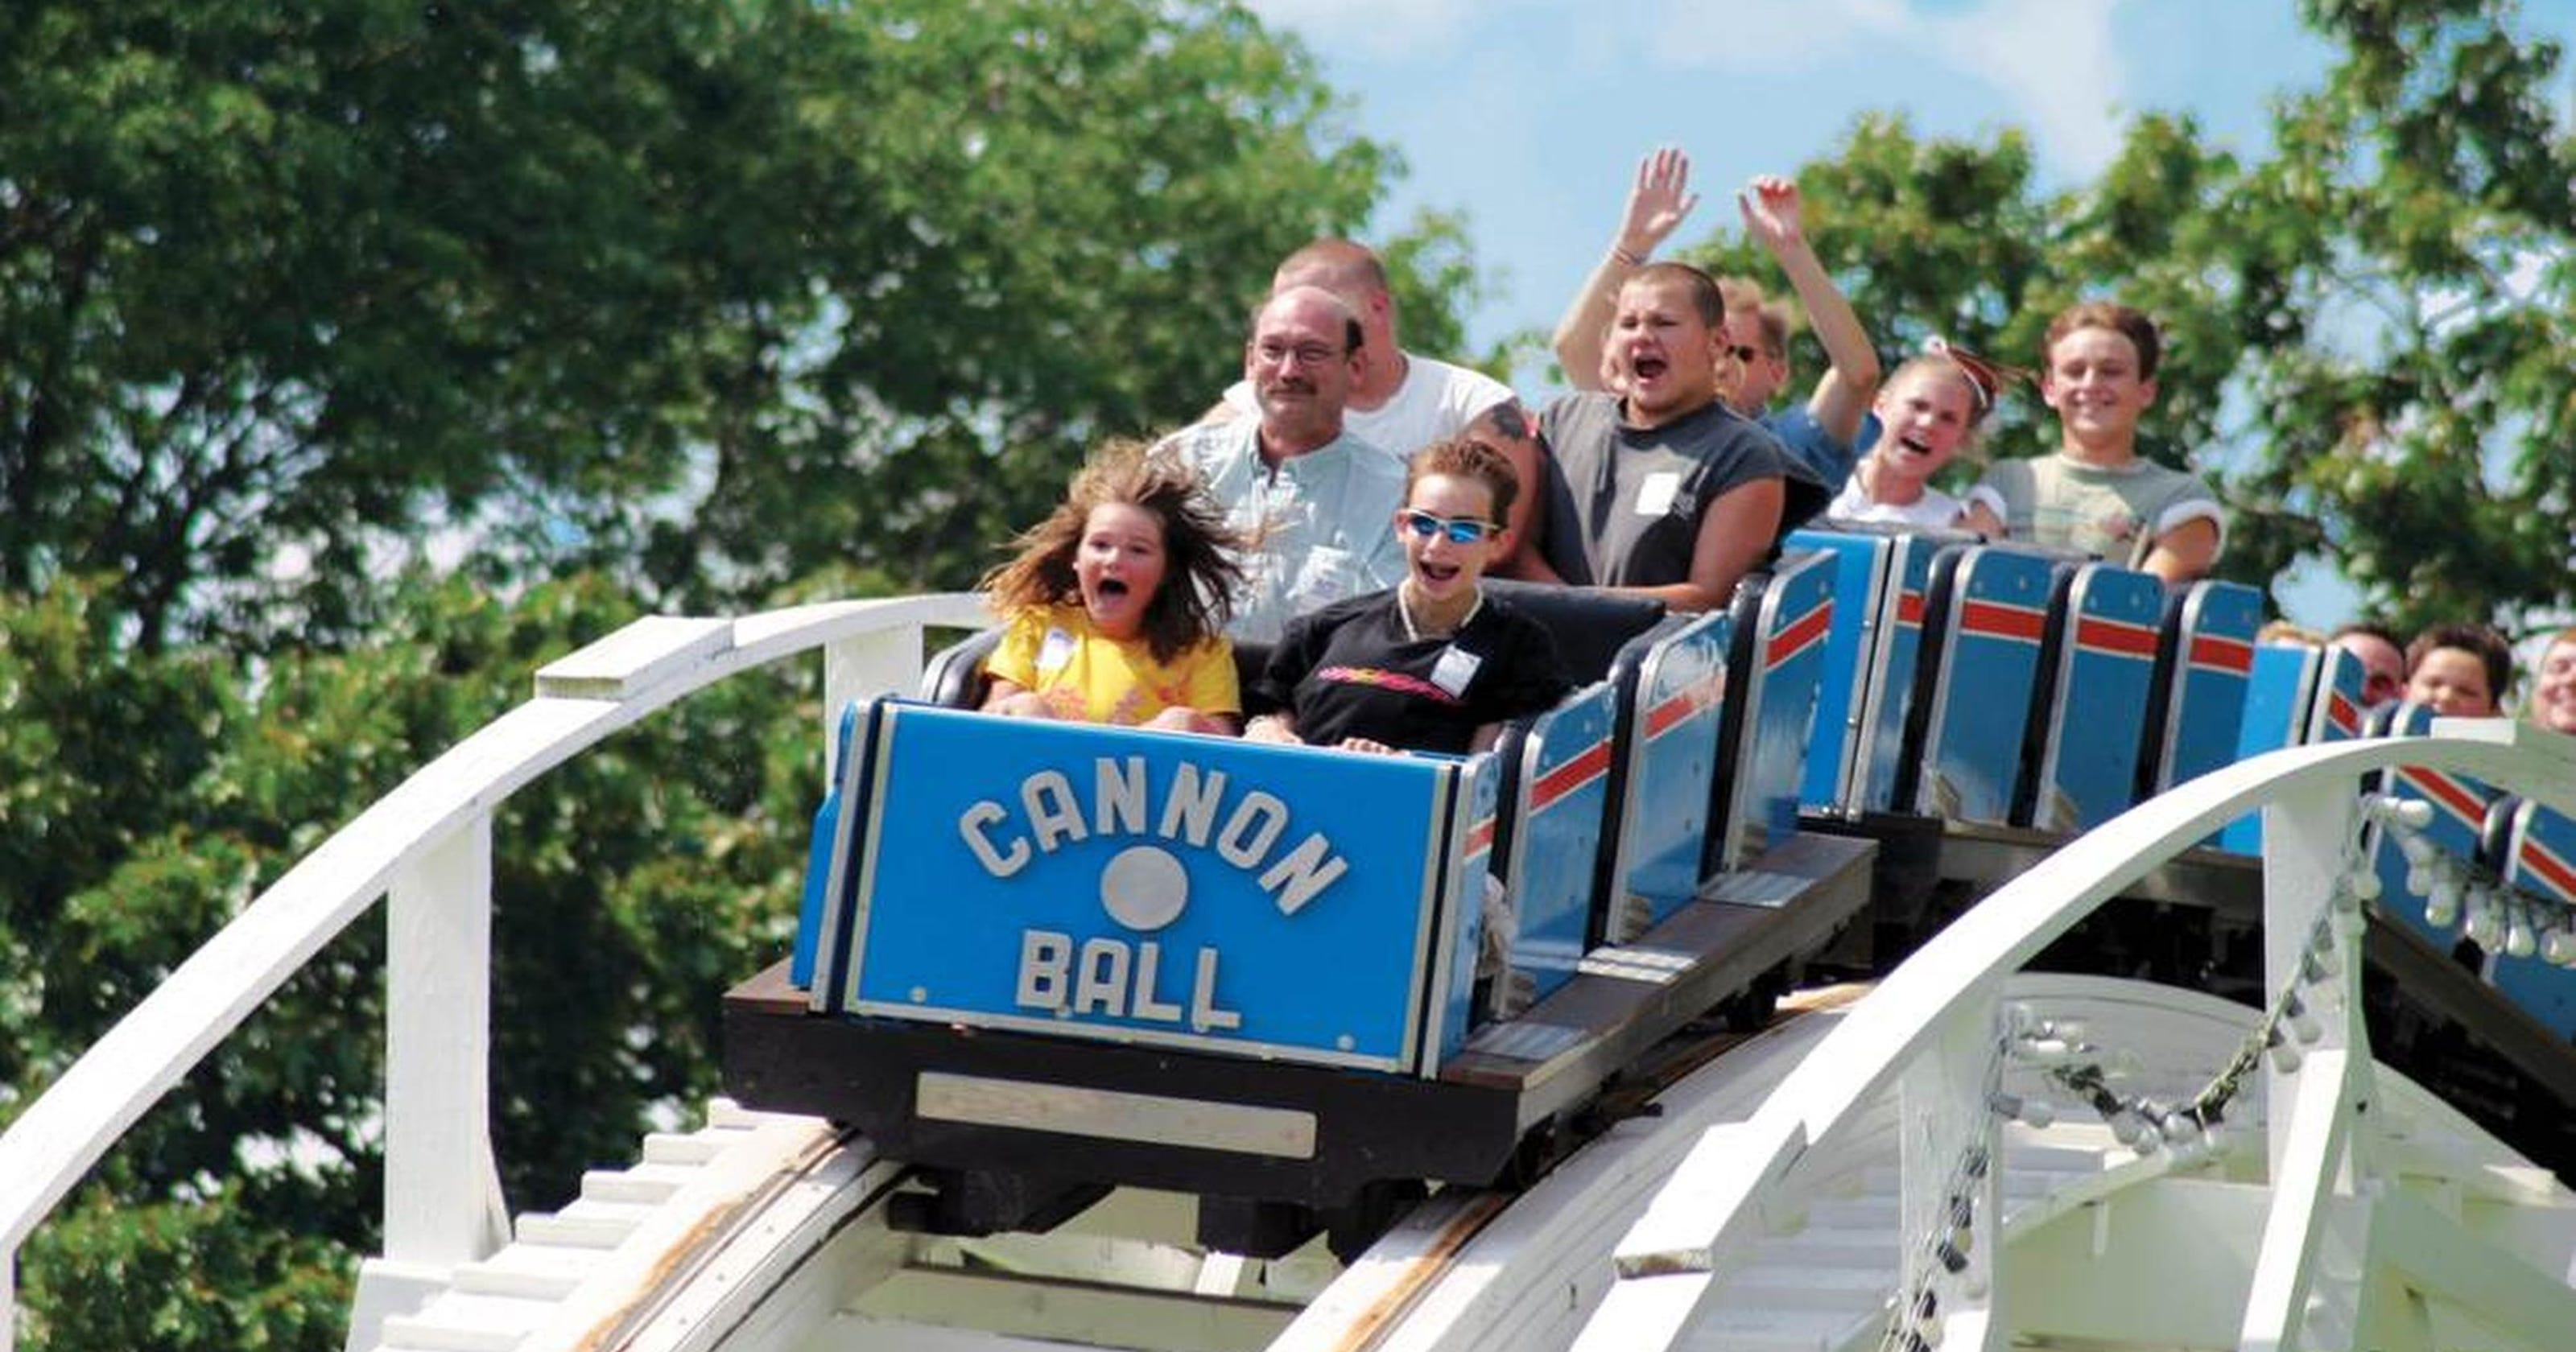 7 theme parks within driving distance of Nashville